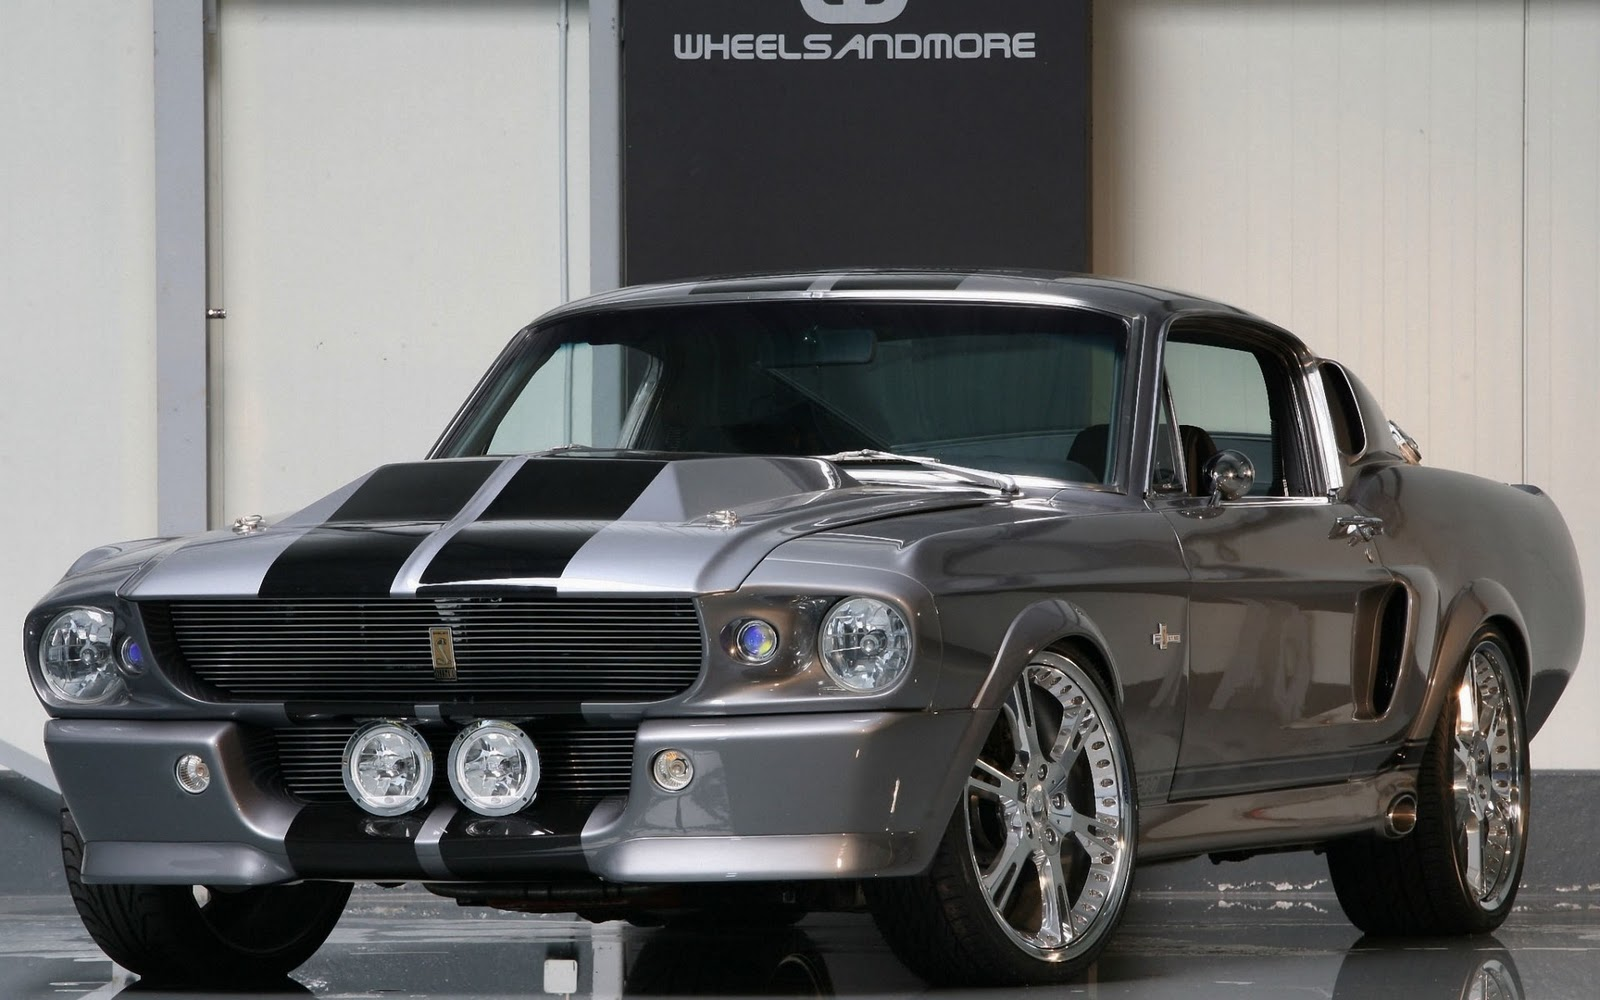 hdcar wallpapers: cool muscle cars wallpaper | free download wallpapers